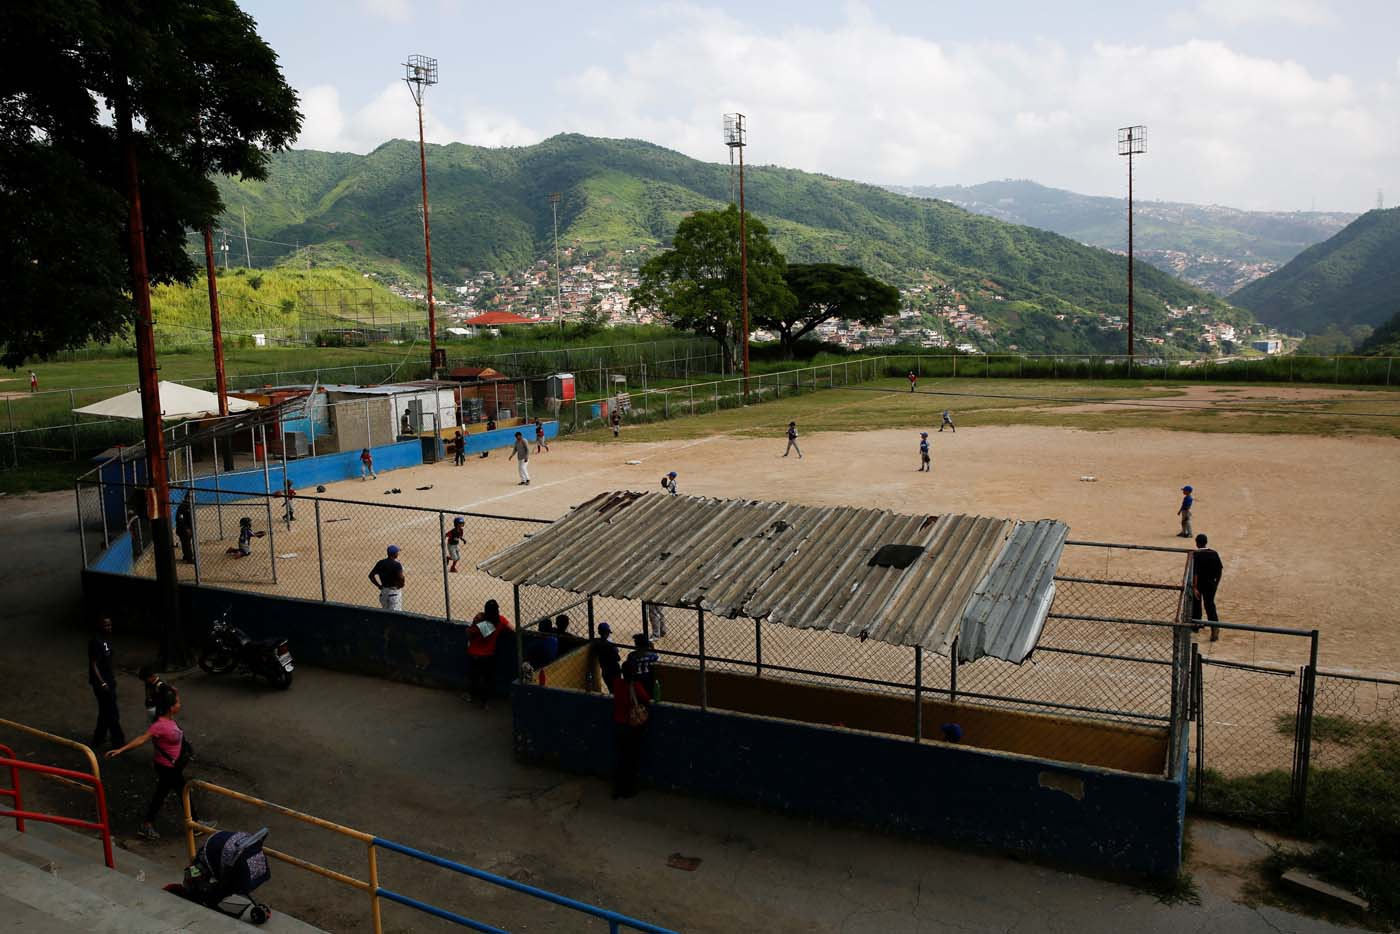 Children play baseball during a championship in Caracas, Venezuela August 24, 2017. Picture taken August 24, 2017. REUTERS/Carlos Garcia Rawlins